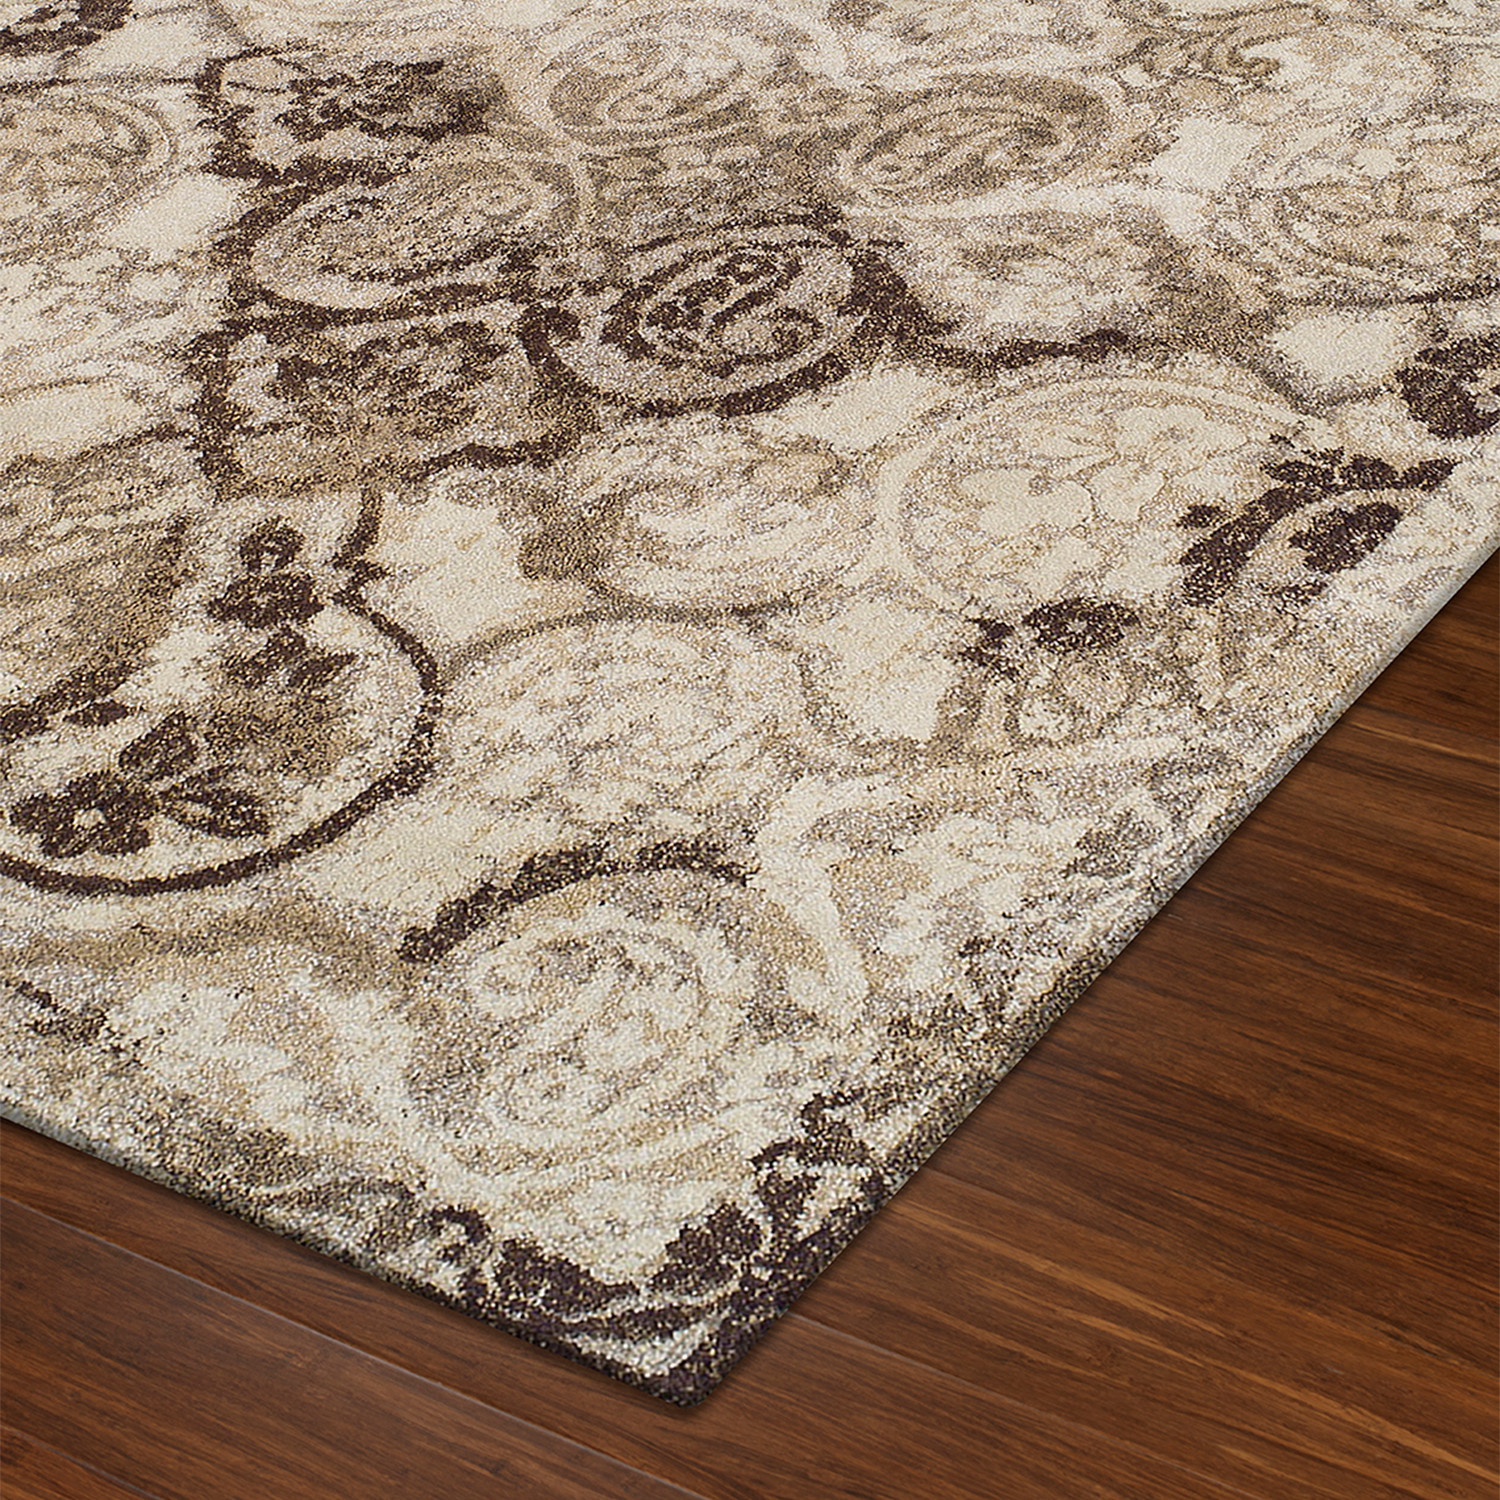 Distressed Damask Brown Ivory